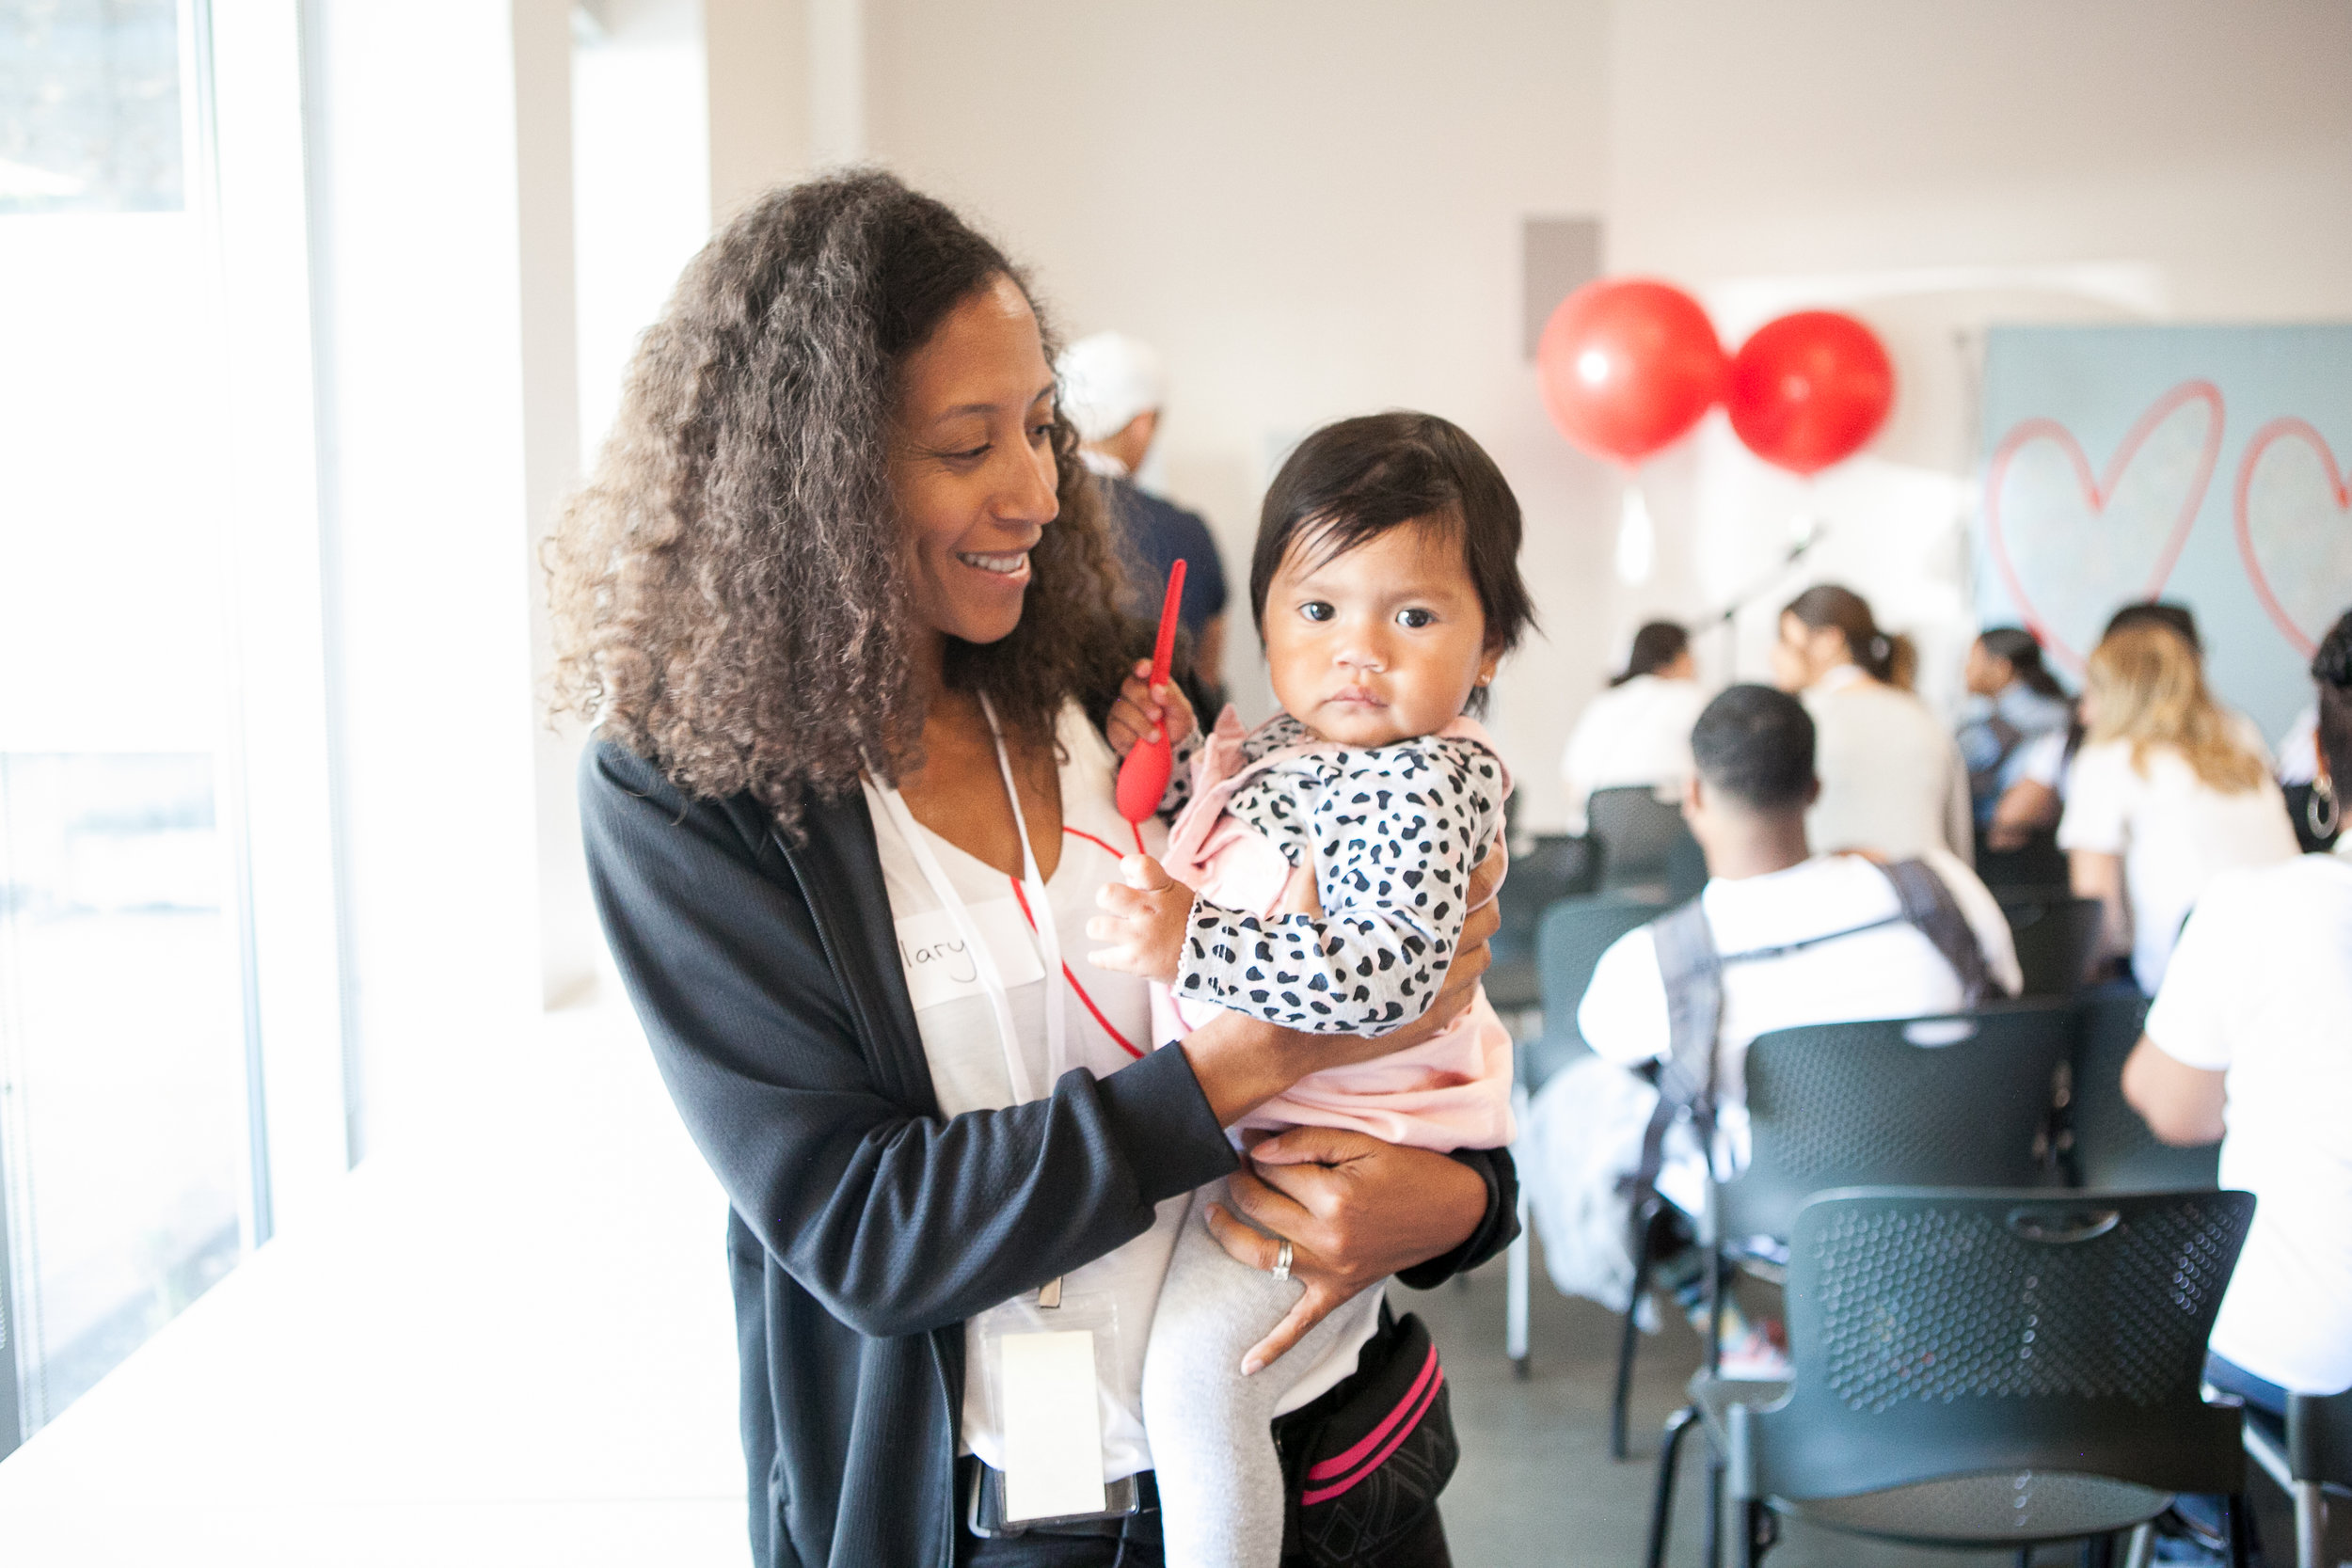 Join the Alliance of Moms Movement - Together, we can provide a supportive community for moms across Los Angeles and help each other learn and grow as parents. For less than the cost of a daily cup of coffee, you can help support young parents in foster care right here in our community.